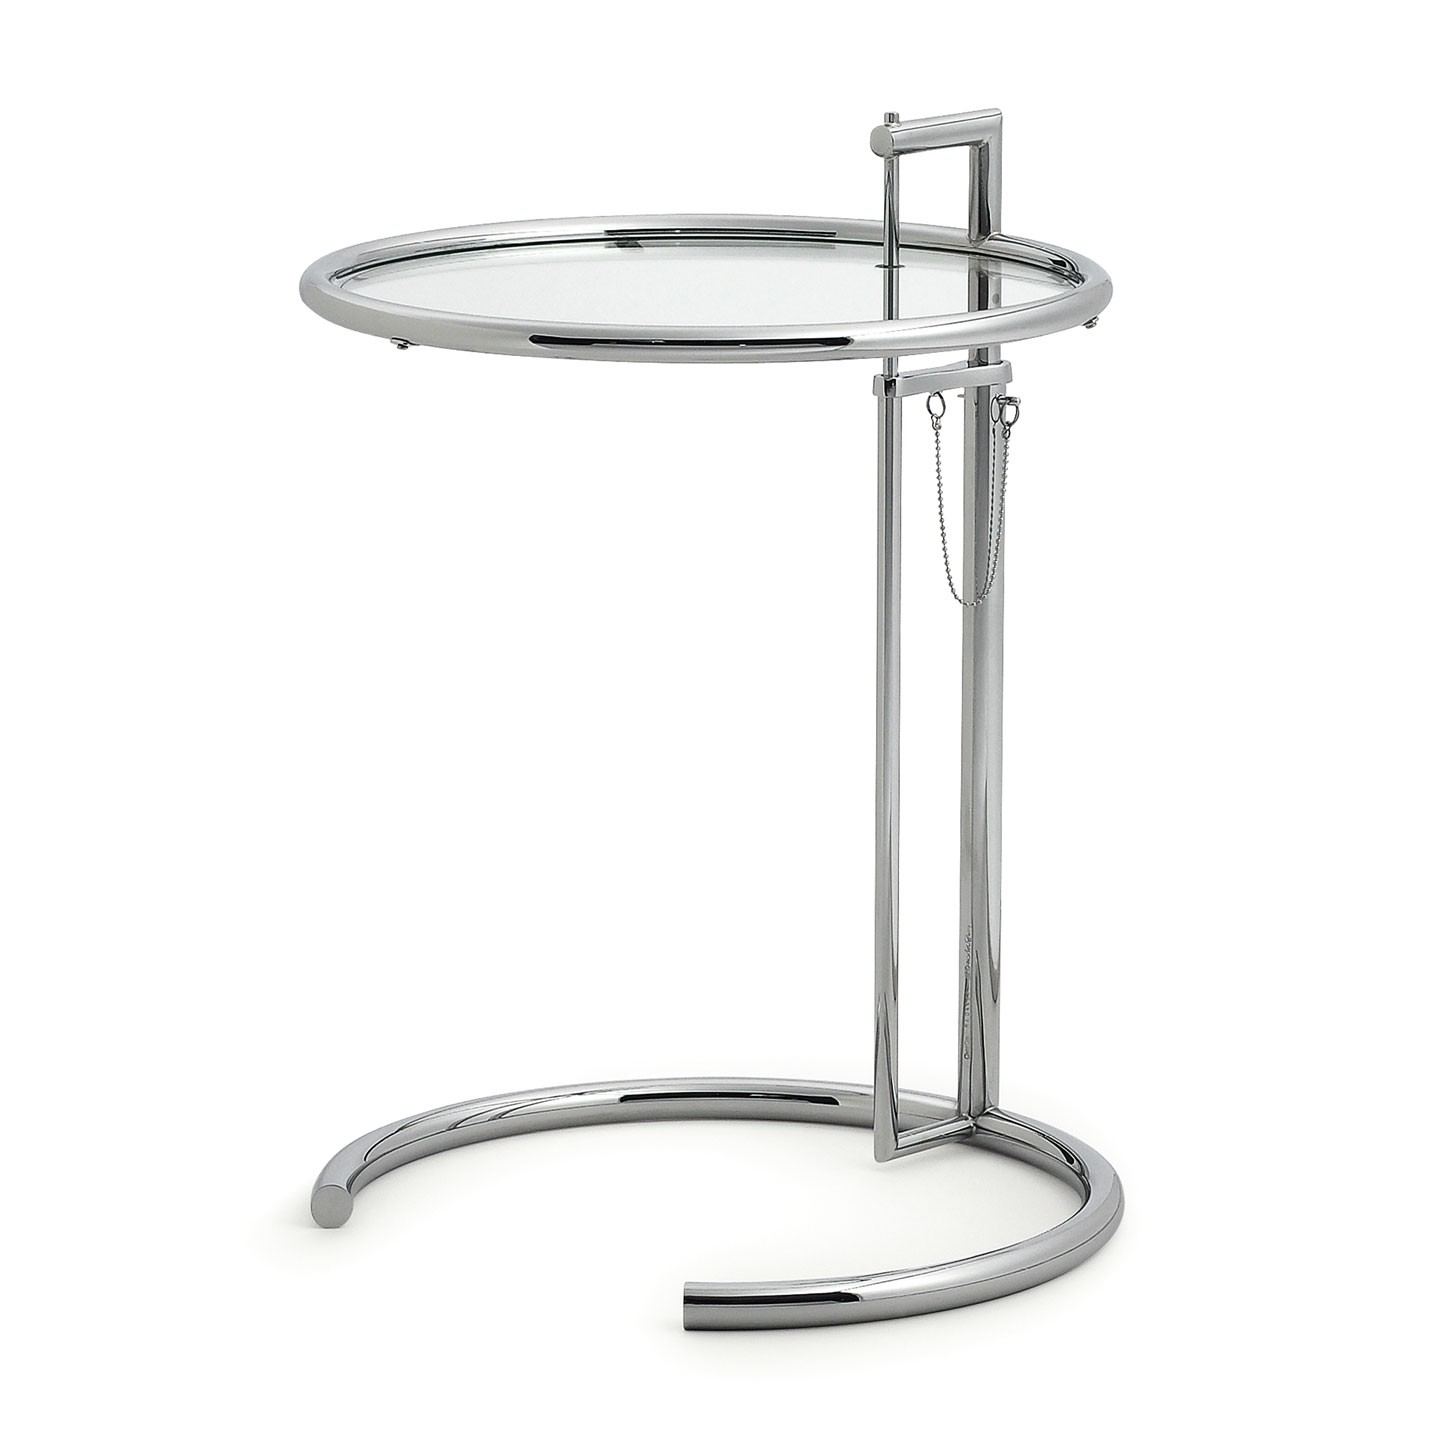 E1027 Side Table